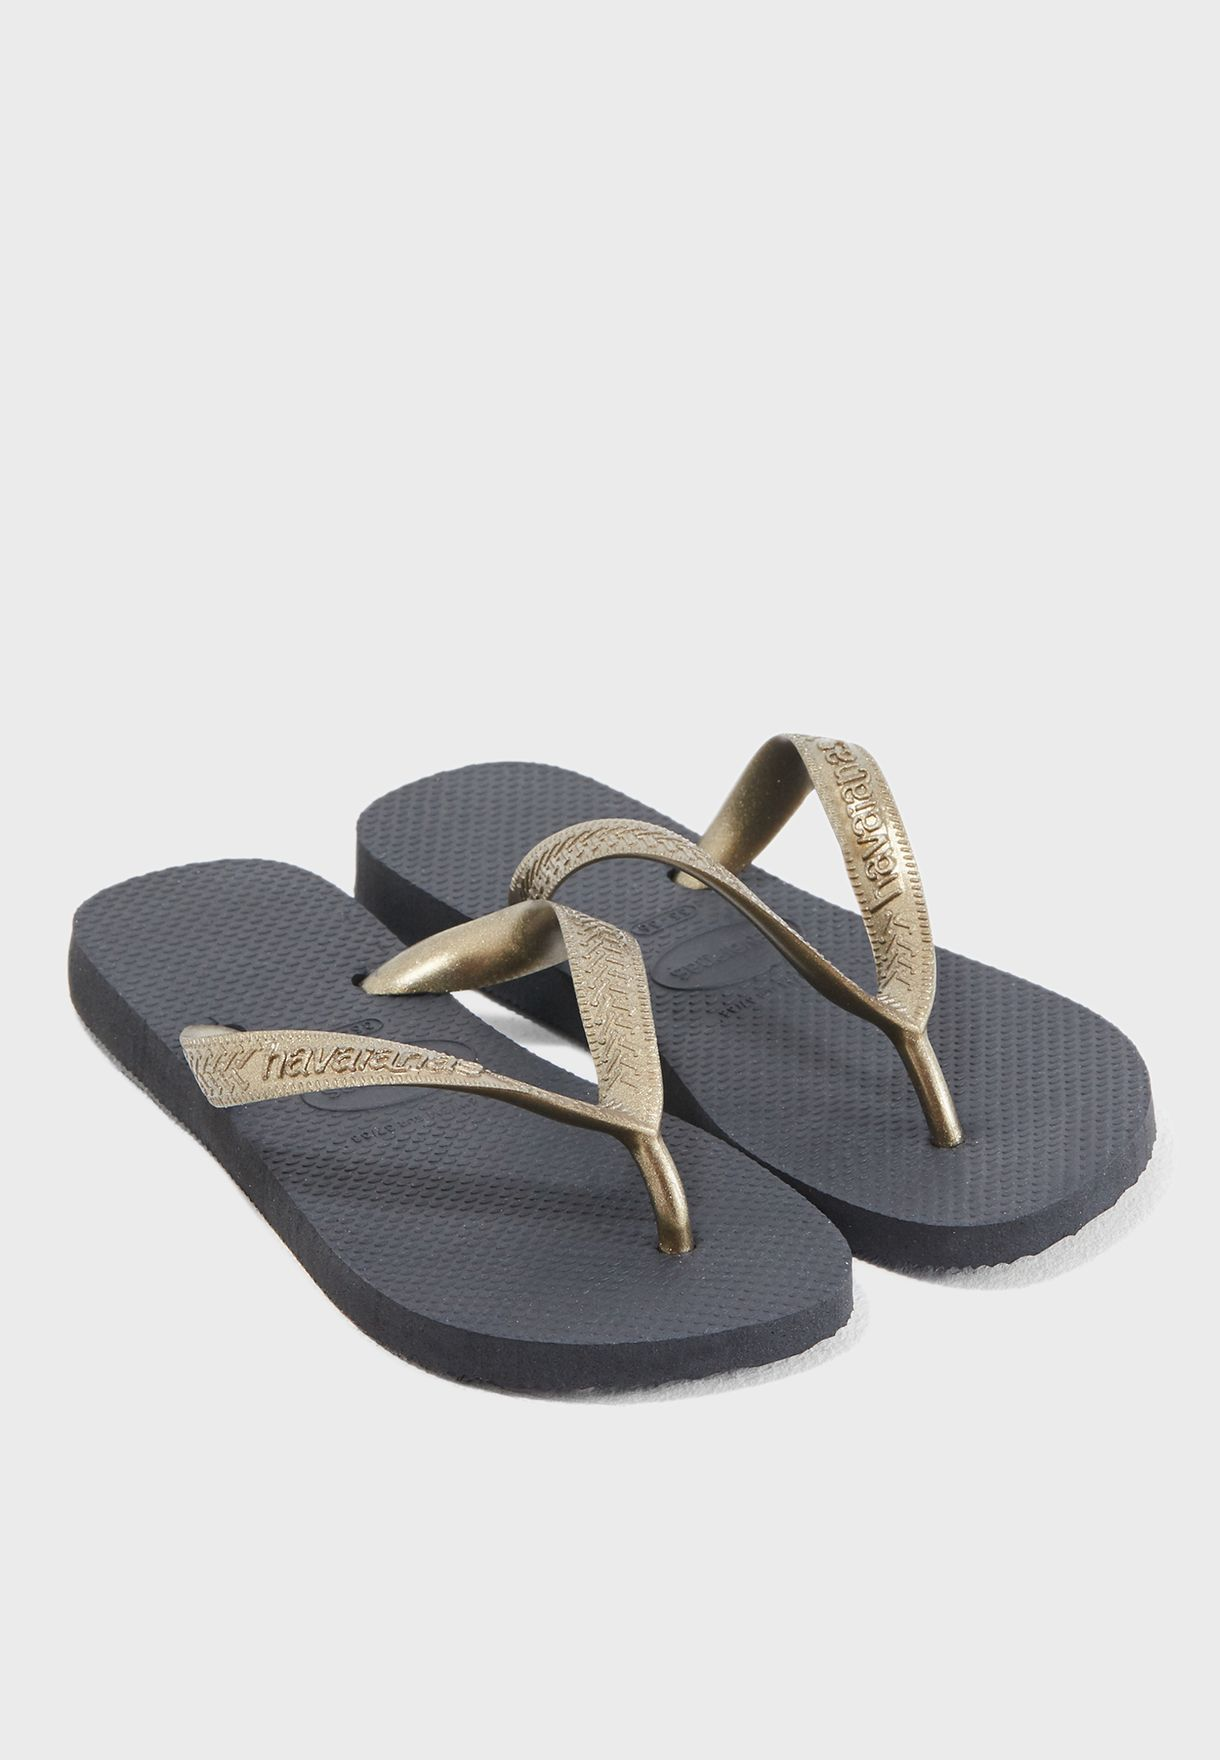 bc1d142846f2c1 Premium Shoes Sports View all · Today s deal New arrivals · 0. Top Tiras  Flip Flop